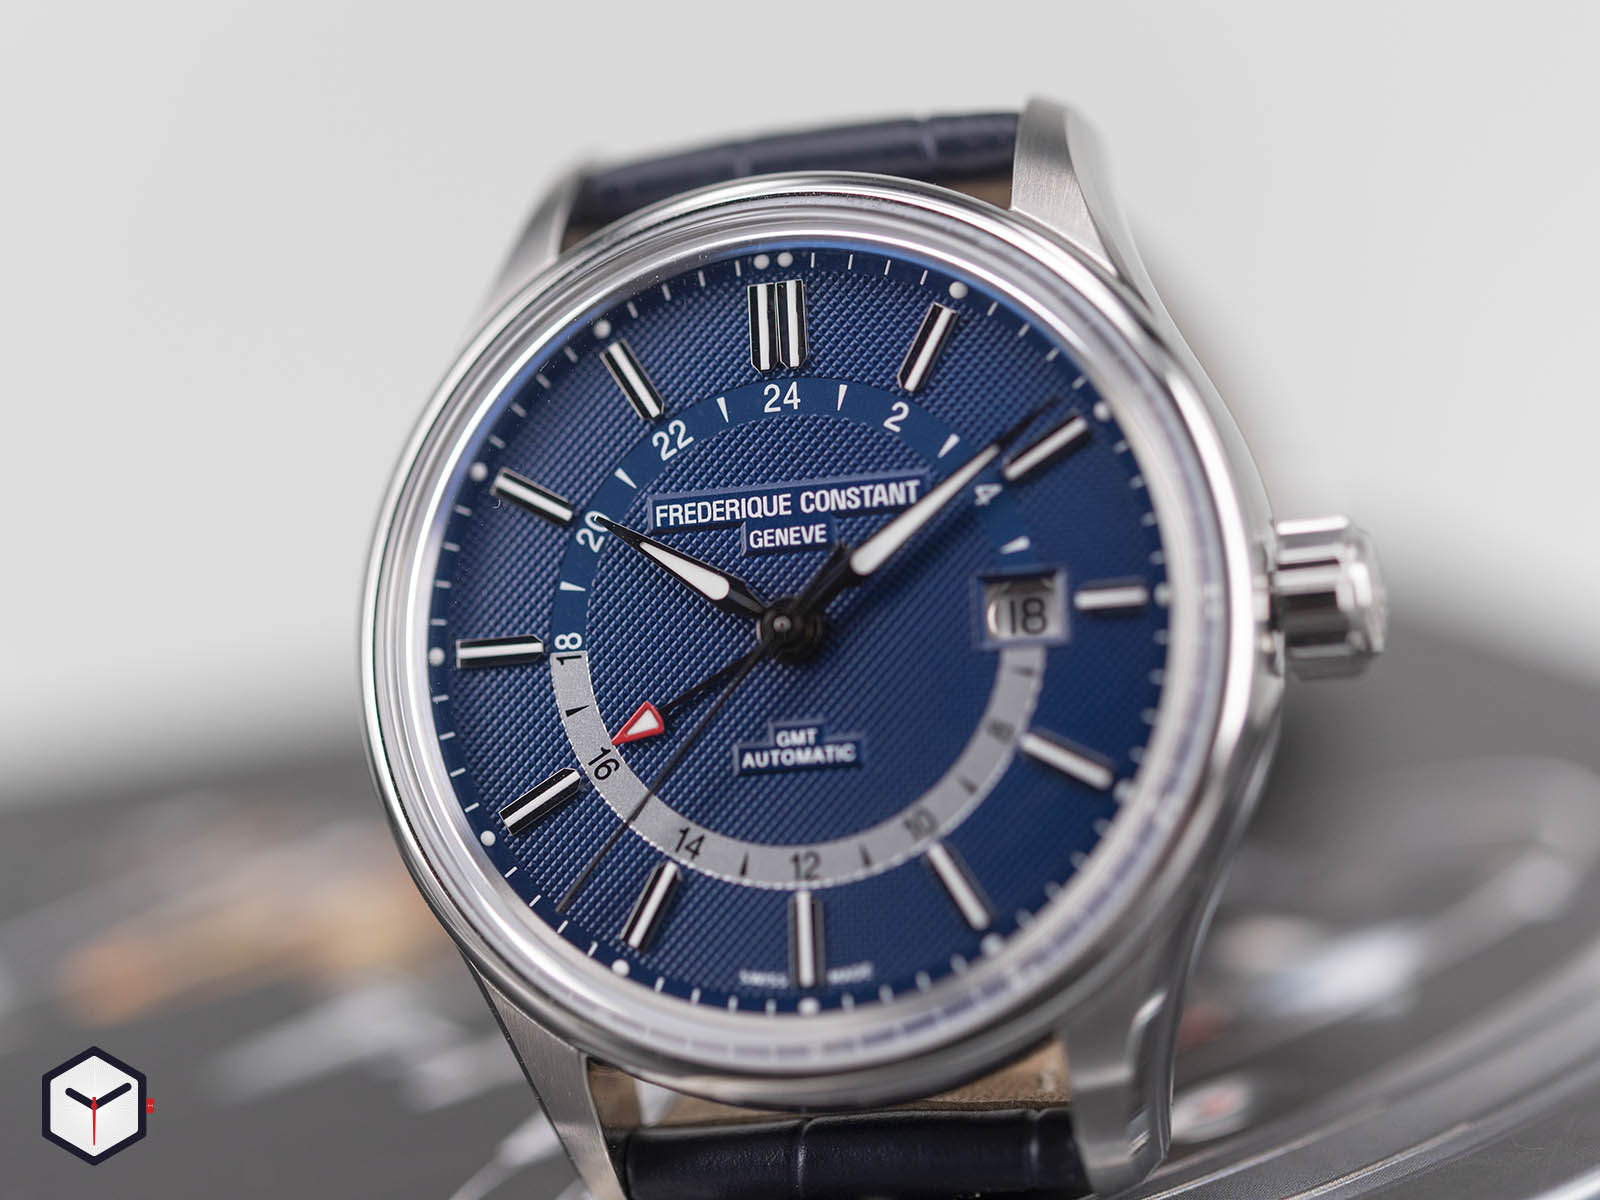 fc-350nt4h6-frederique-constant-yacht-timer-gmt-4.jpg